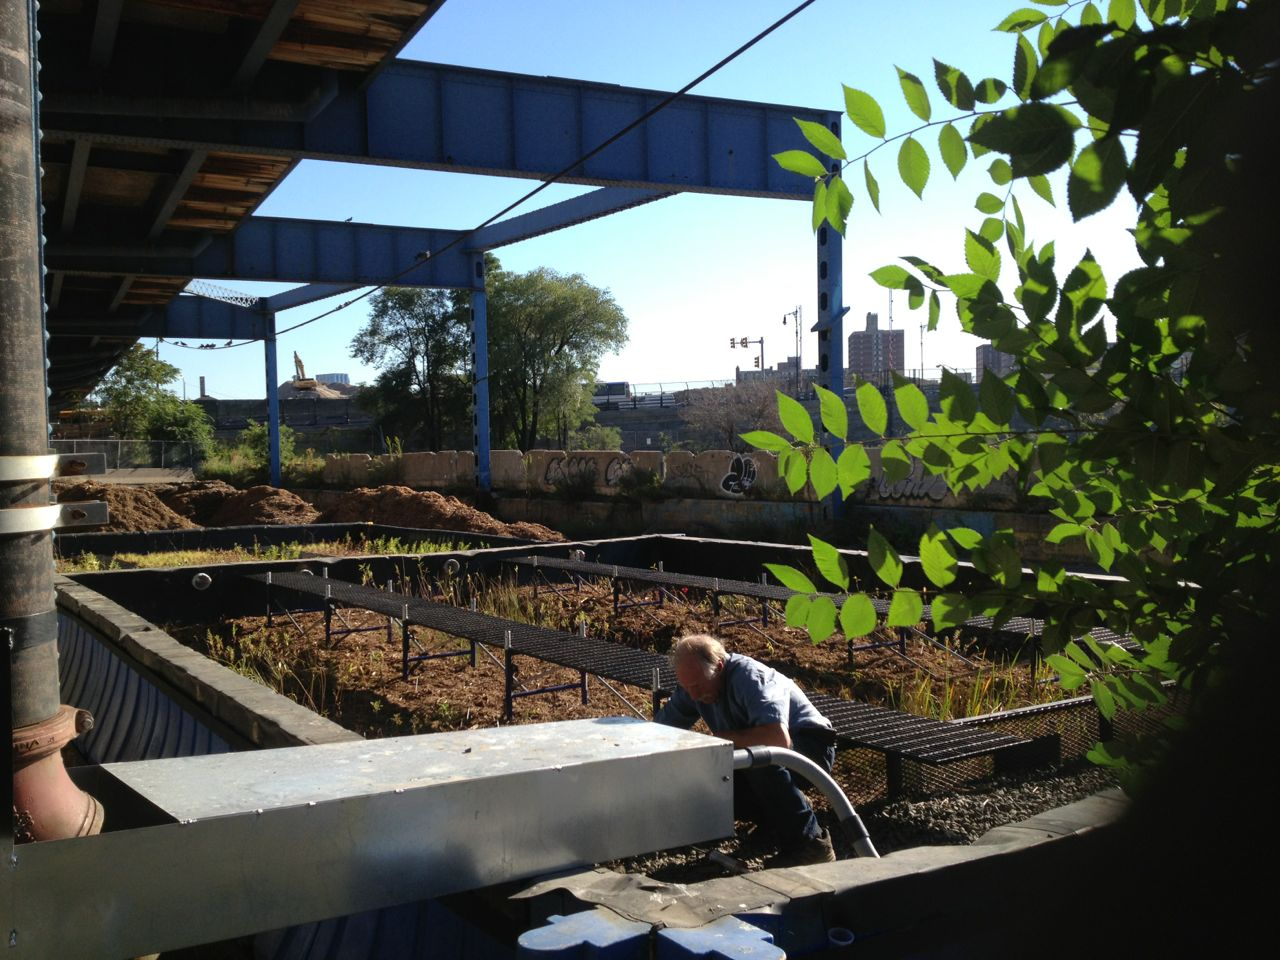 Scientist Paul Mankiewicz inspects his handiwork, a pop-up wetland at Pier 5.